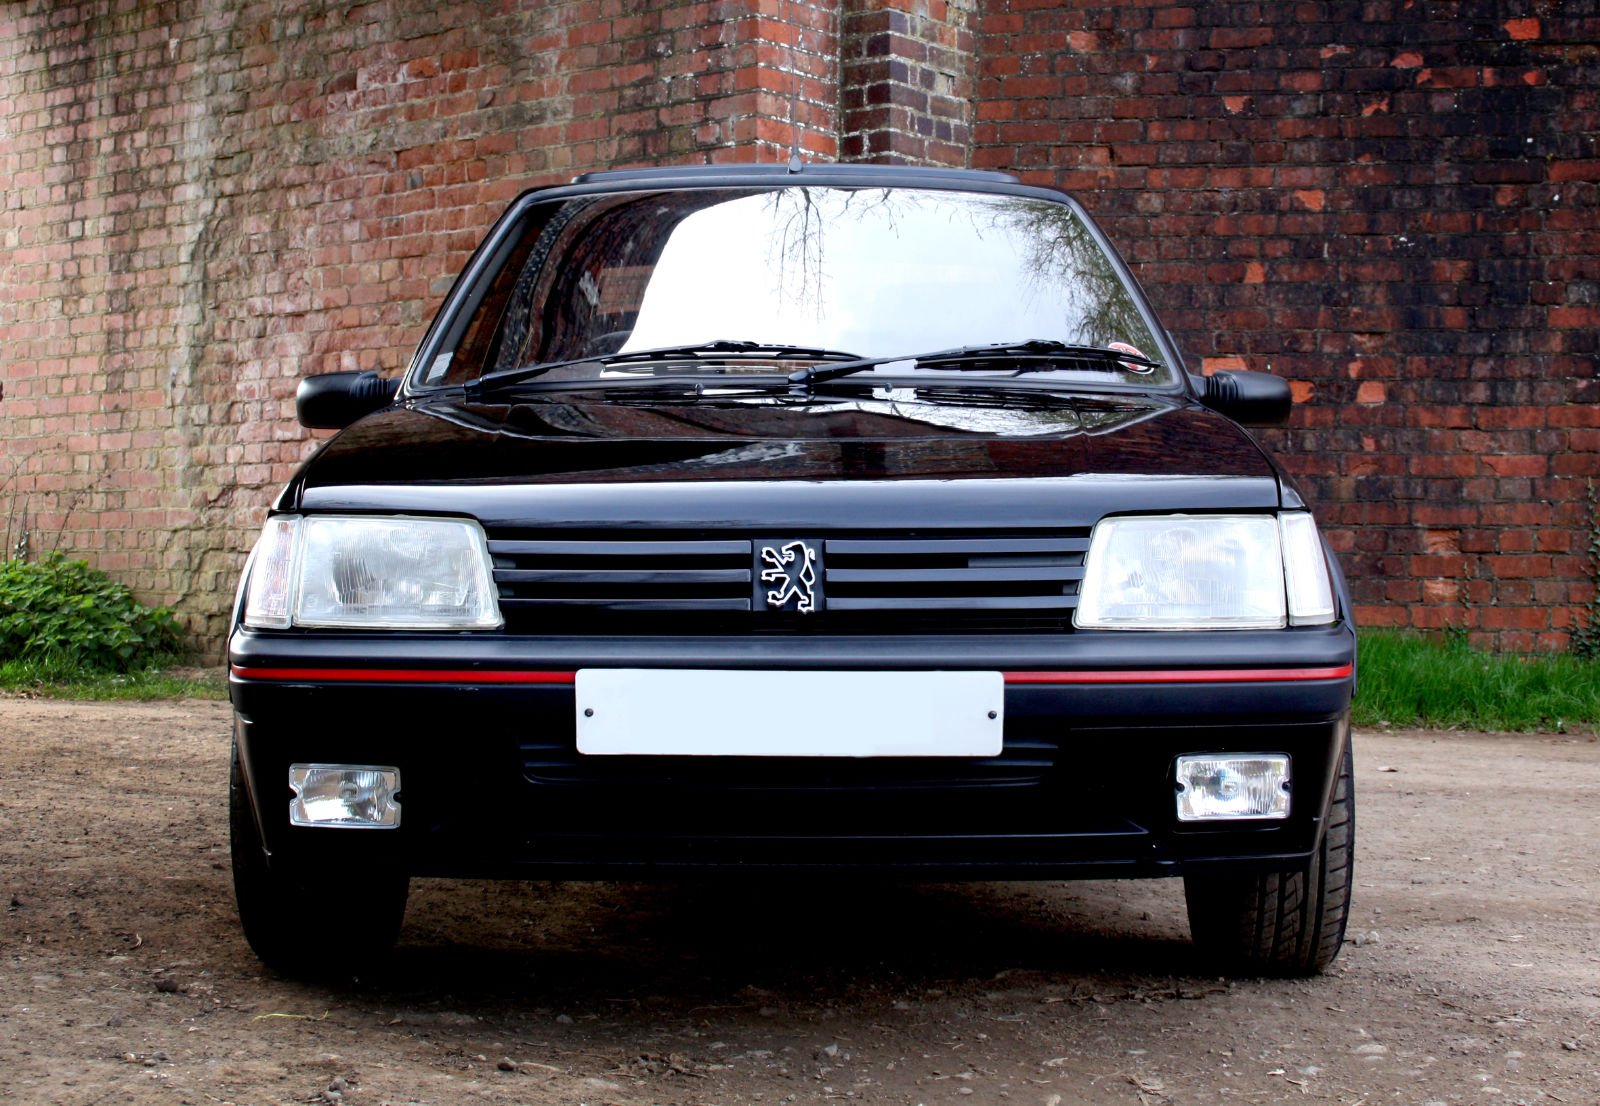 In pictures failcar 39 s peugeot 205 gti petrolblog for Housse 205 gti